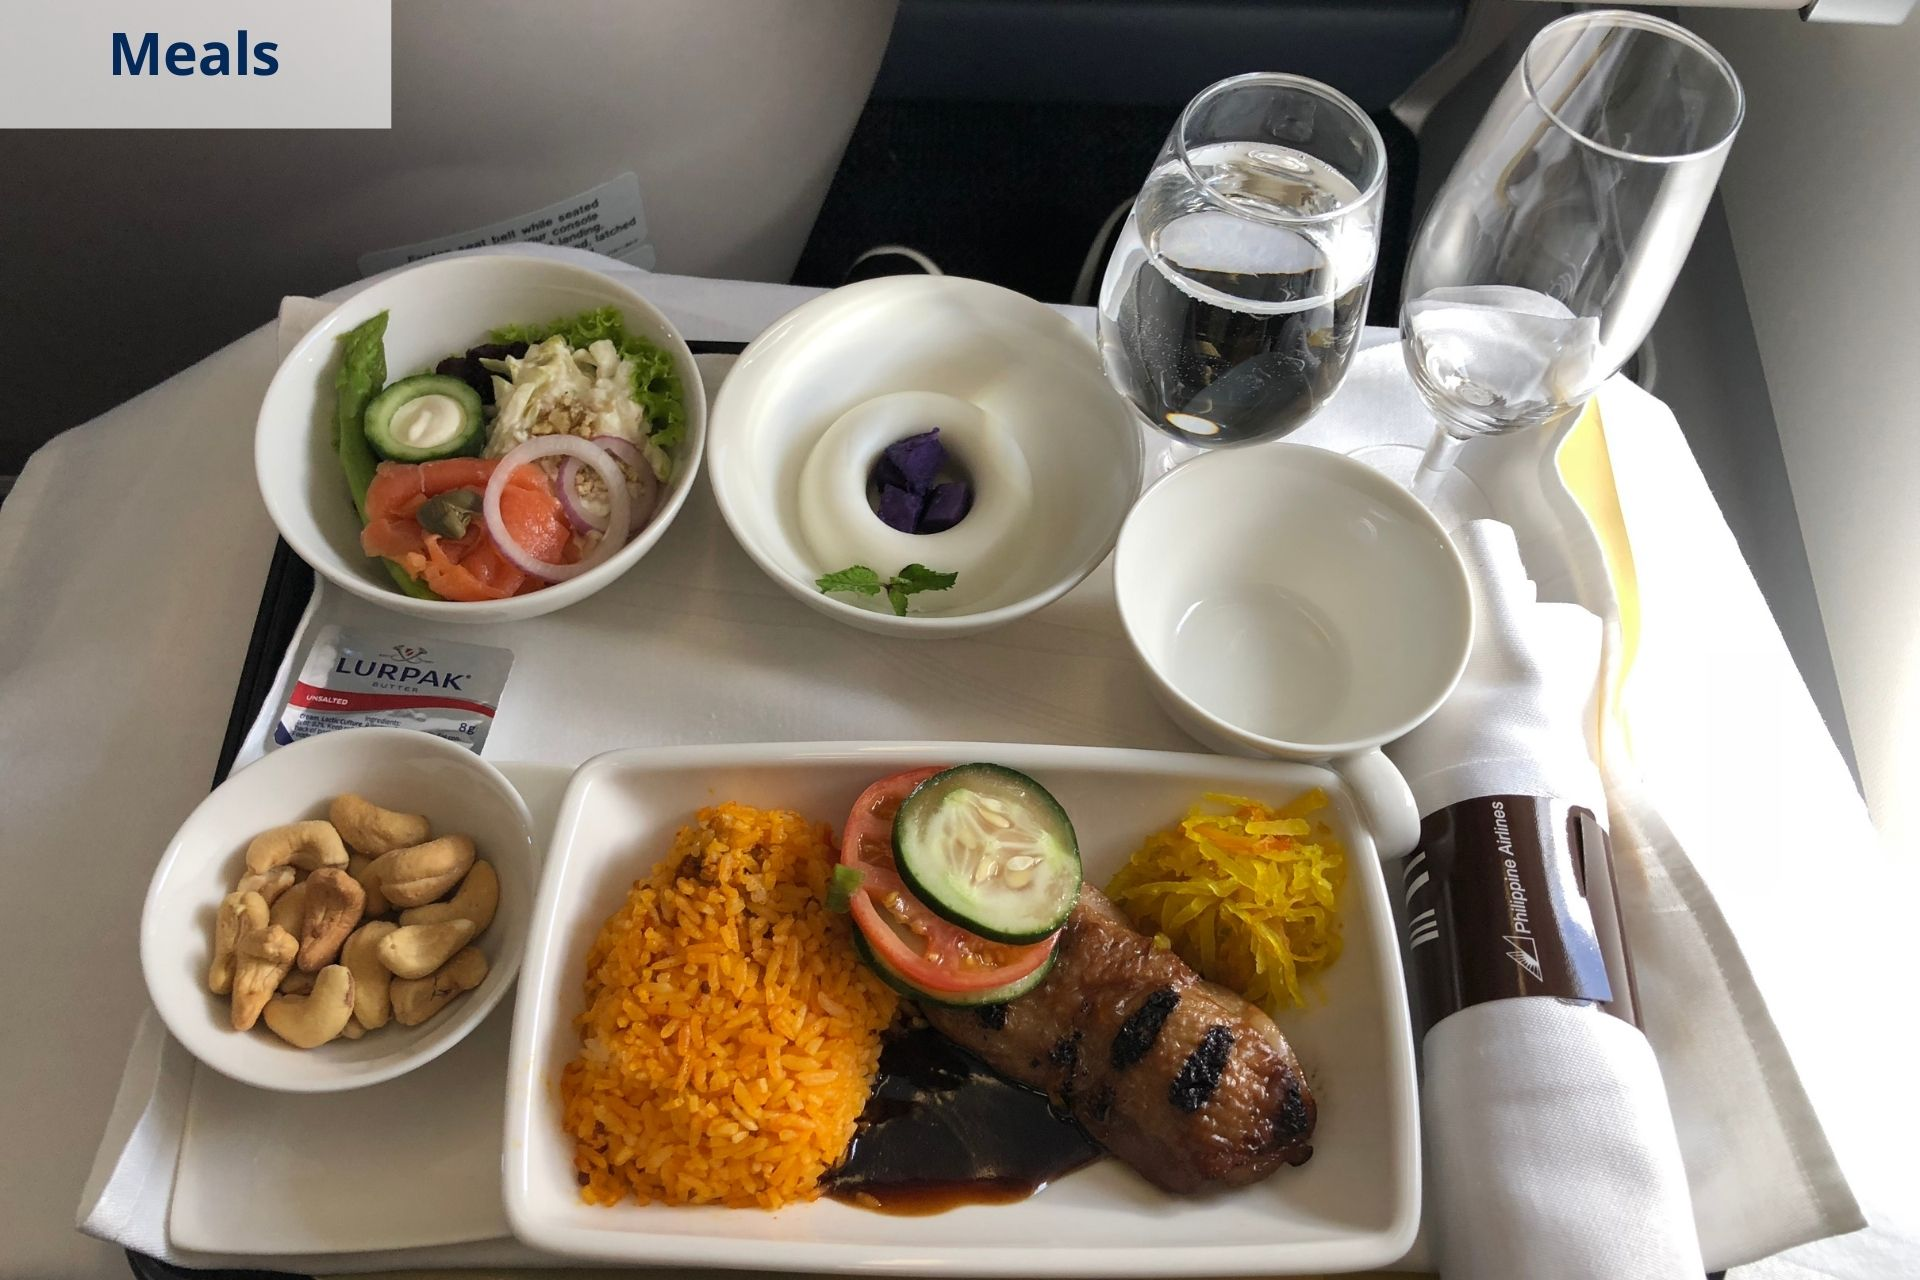 Philippine Airlines meals